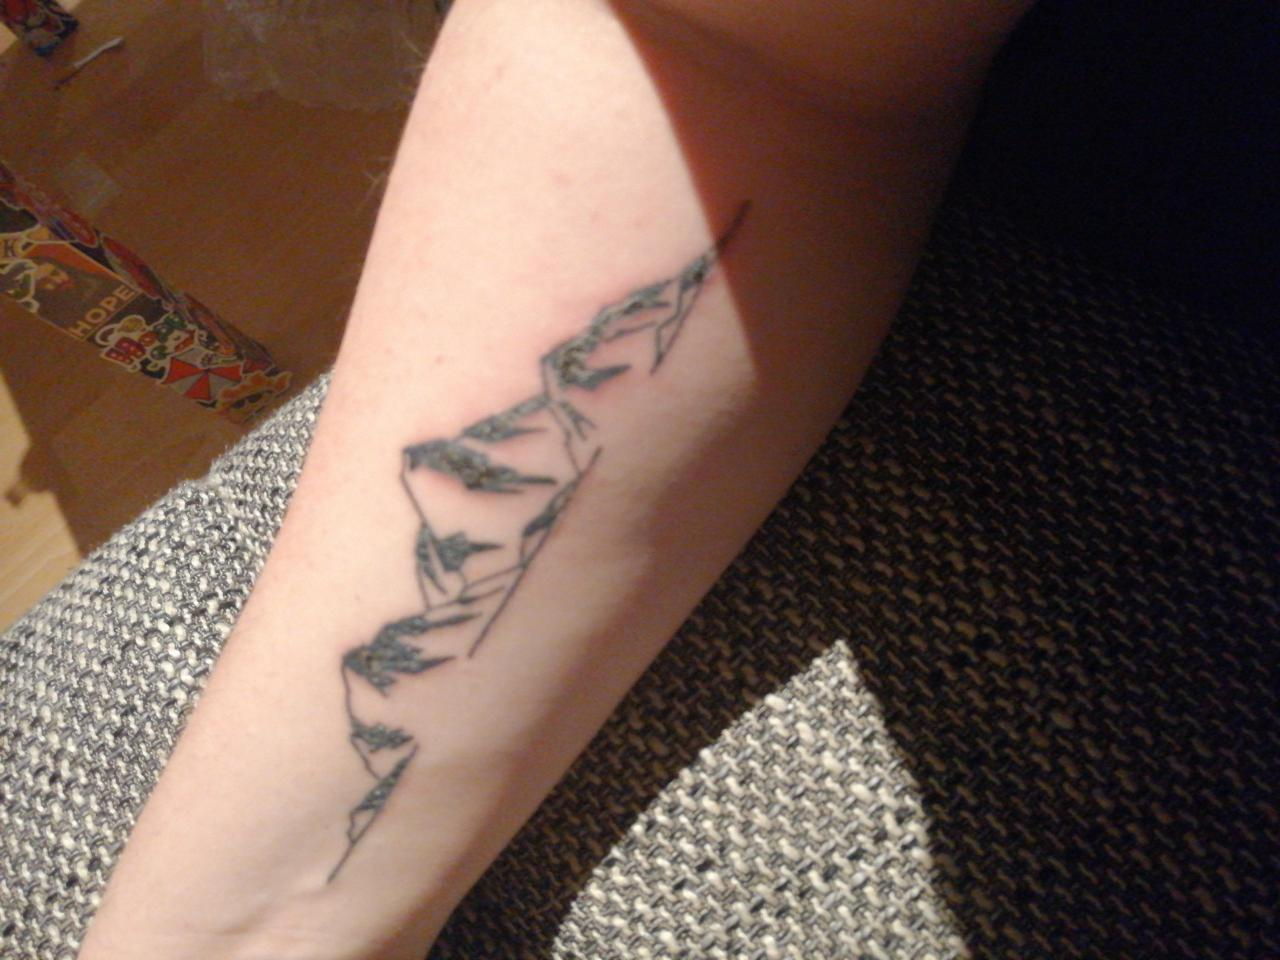 First tattoo. Starting with a little one and soon my armes will be fully artistically painted